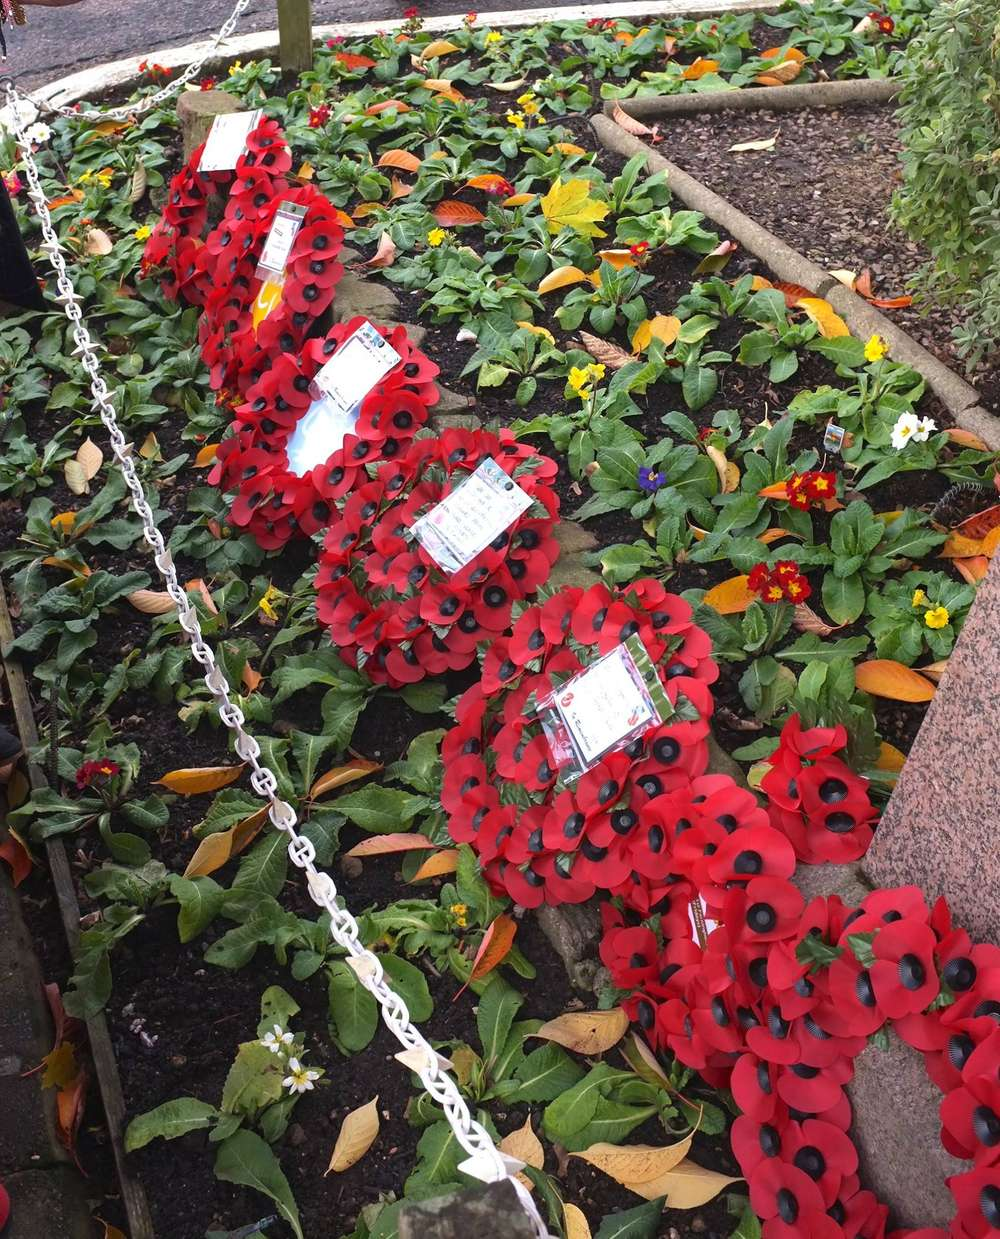 Eynsford's Community Gathers for Remembrance Day